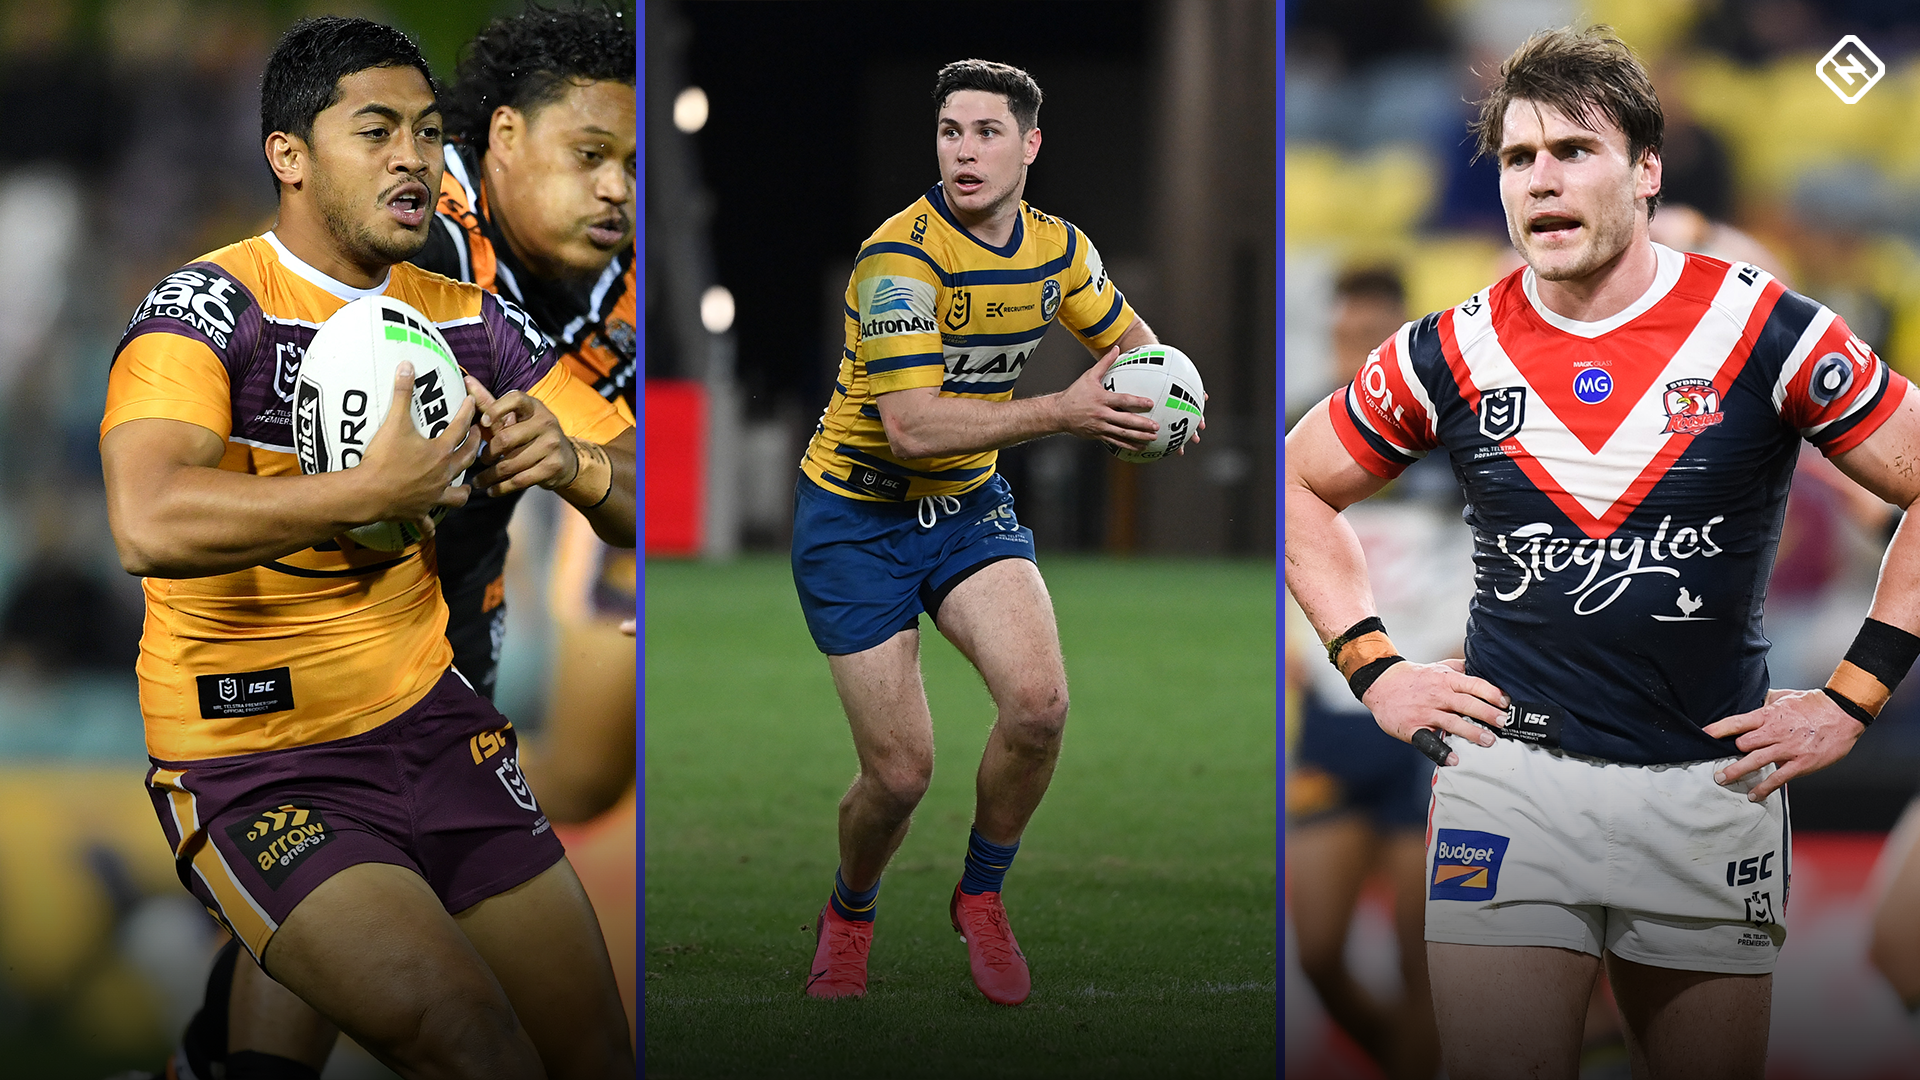 Nrl 2020 Every Club S Team List For Round 11 Sporting News Australia